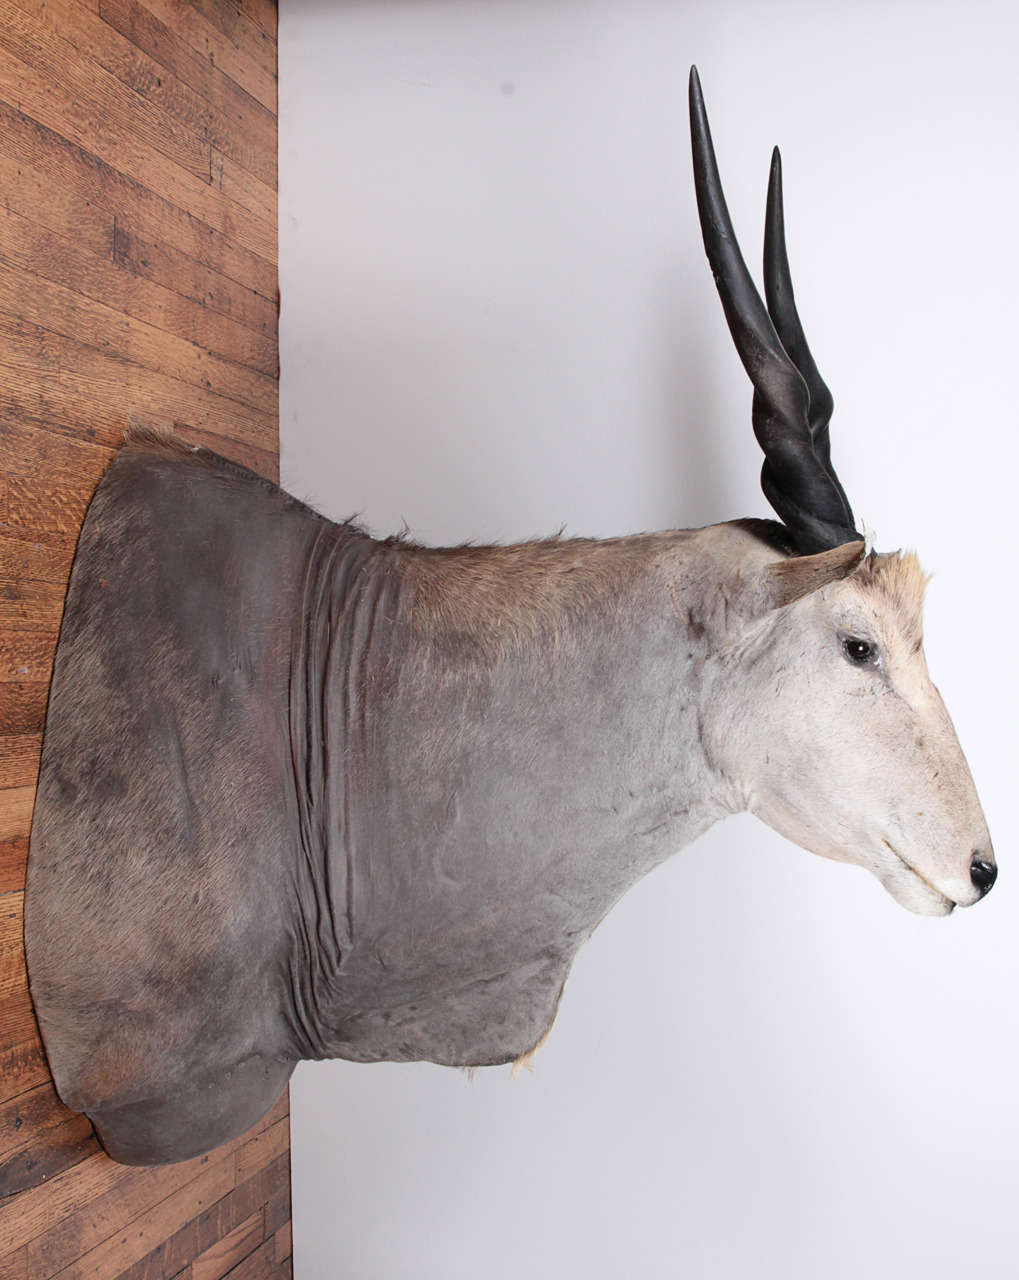 Impressive East African eland taxidermy shoulder mount. Upright, forward mount. Great coloring and taxidermy in excellent condition. This can be seen at our 2420 Broadway location on the upper west side in Manhattan.